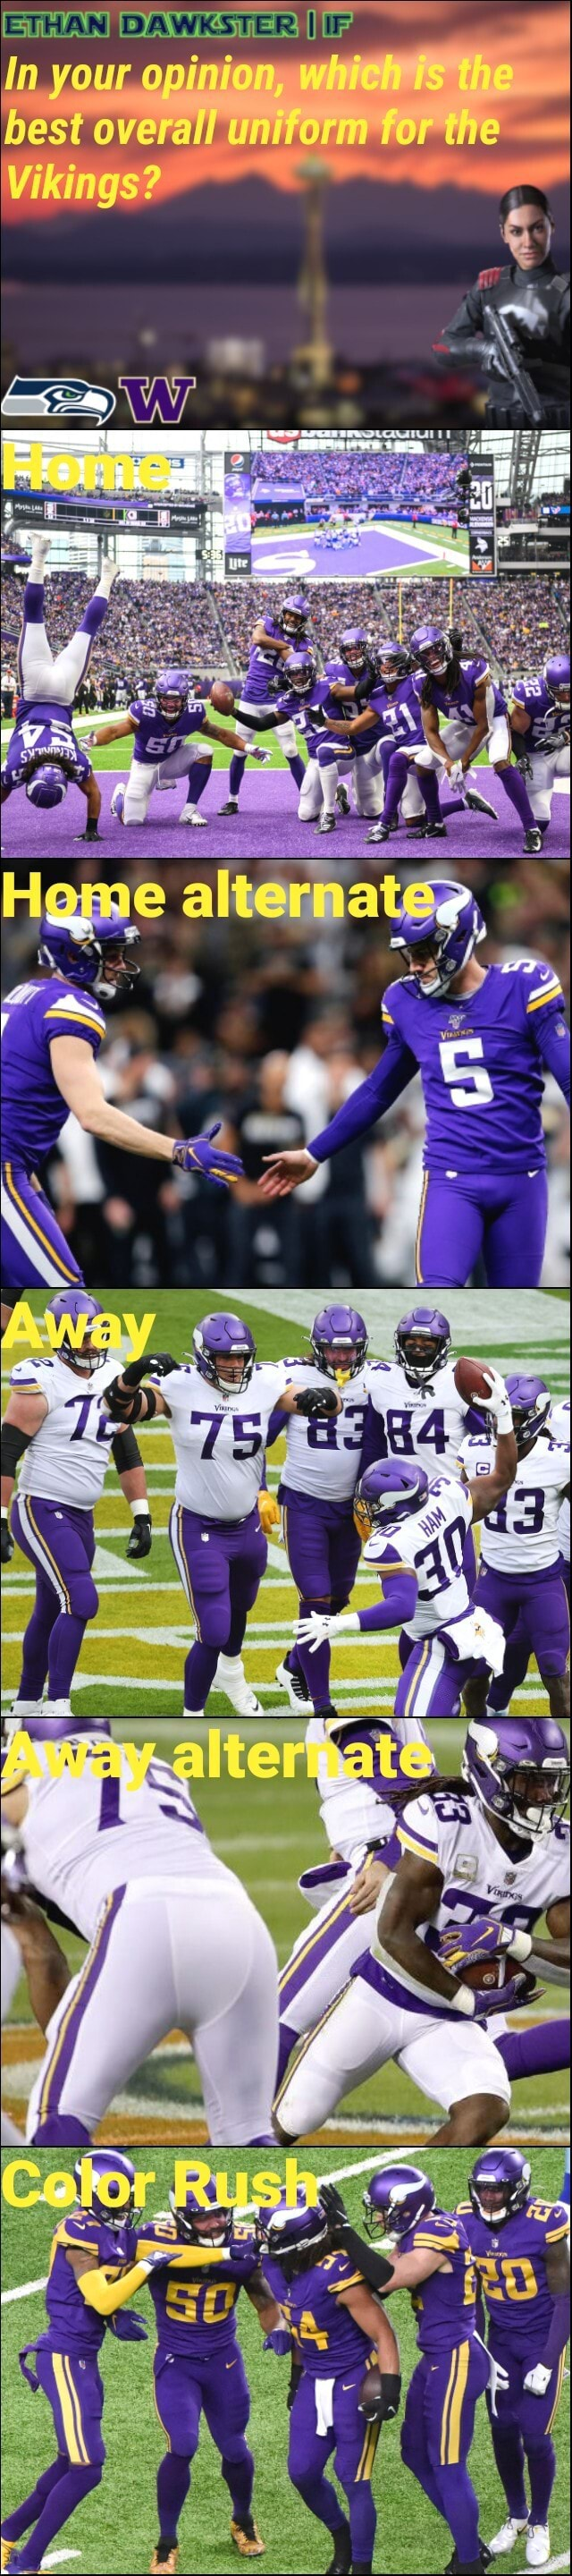 In your opinion best overall uniform for the Vikings memes